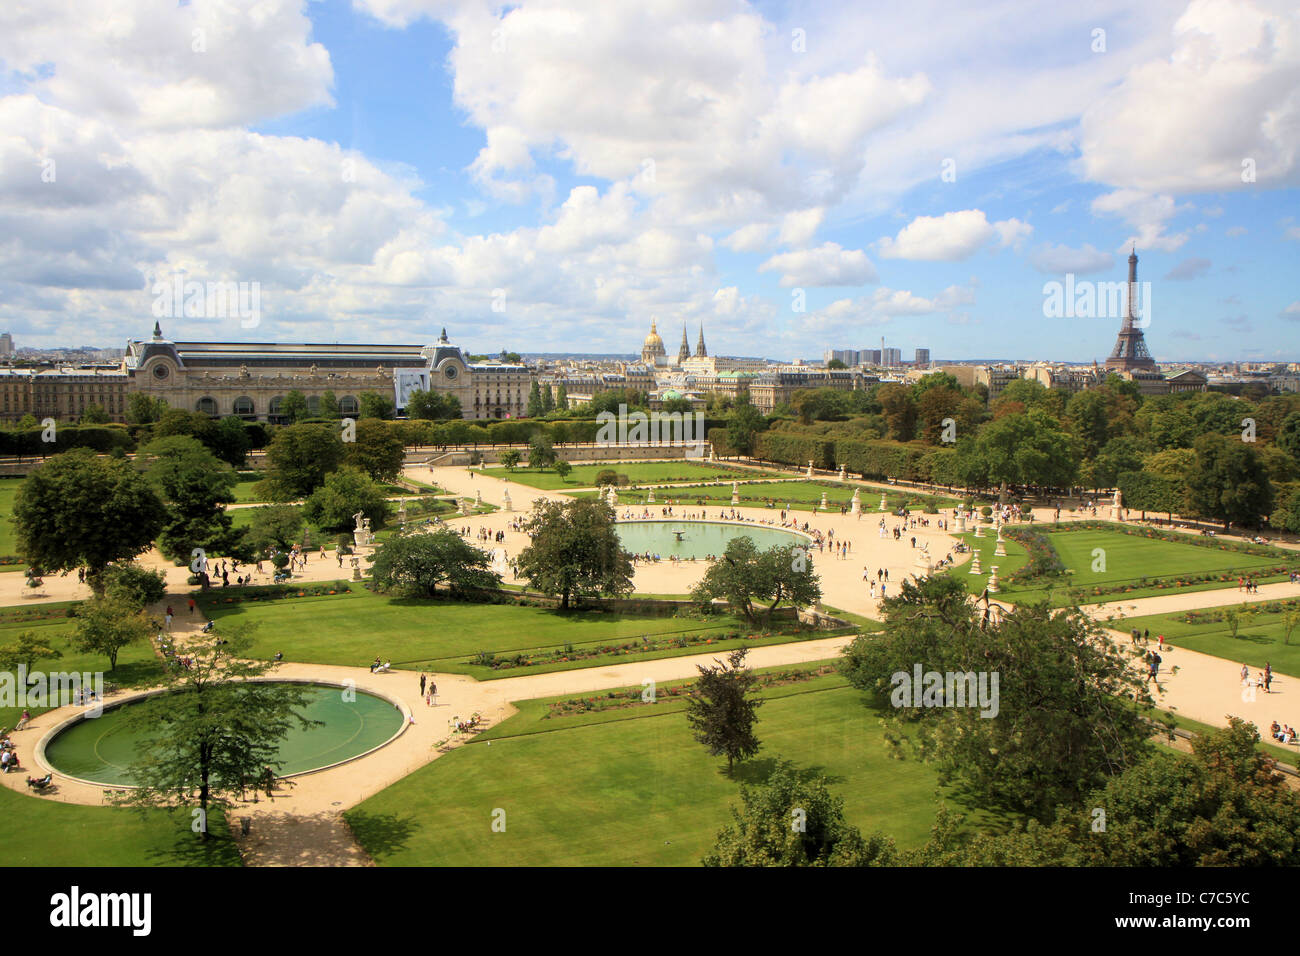 Aerial view of jardin des tuileries from the great wheel for Jardins jardins des tuileries